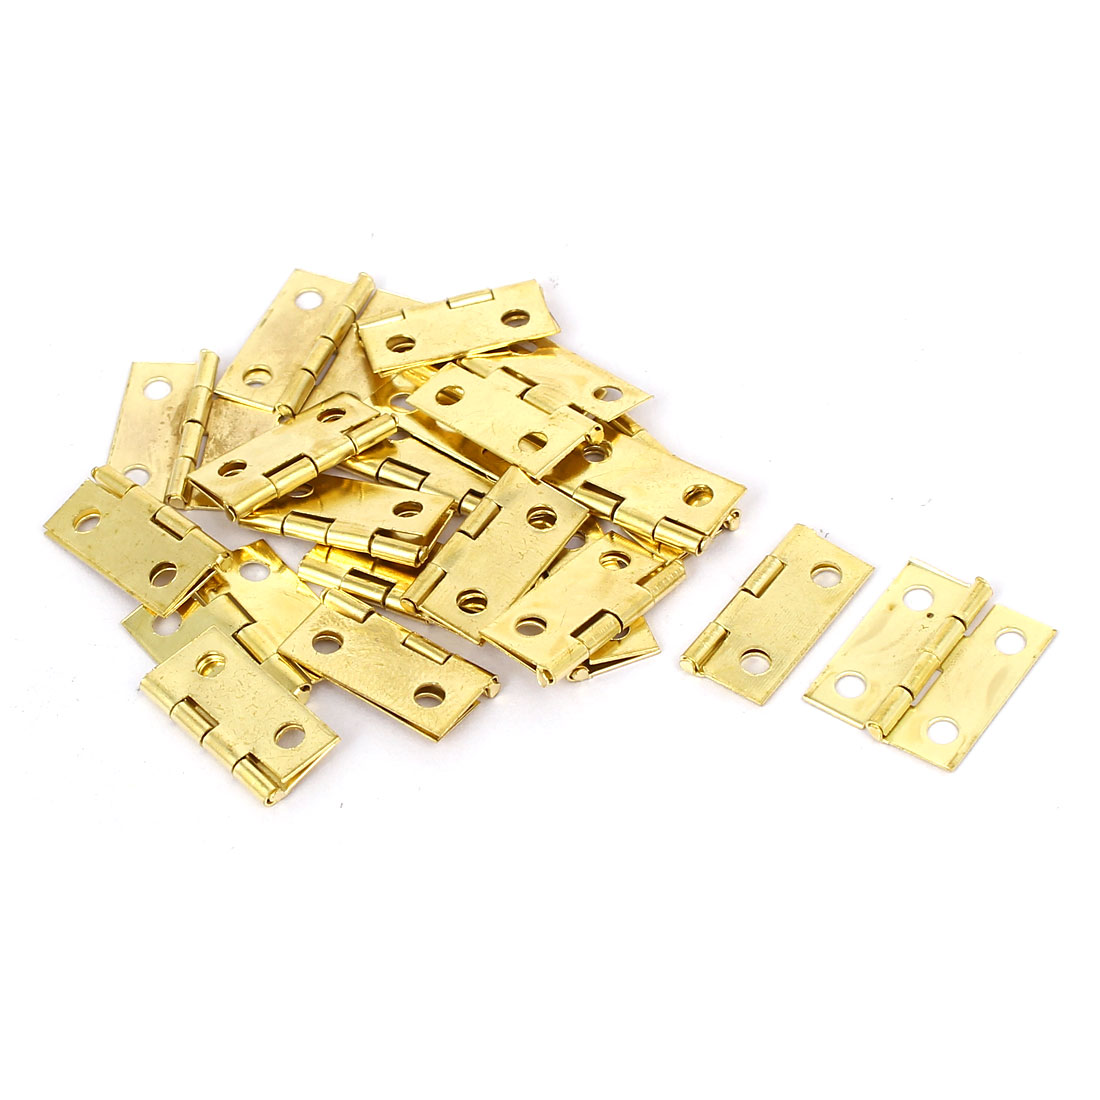 Jewelry Gift Box Wood Case Butt Hinges Gold Tone 18mm Length 20PCS